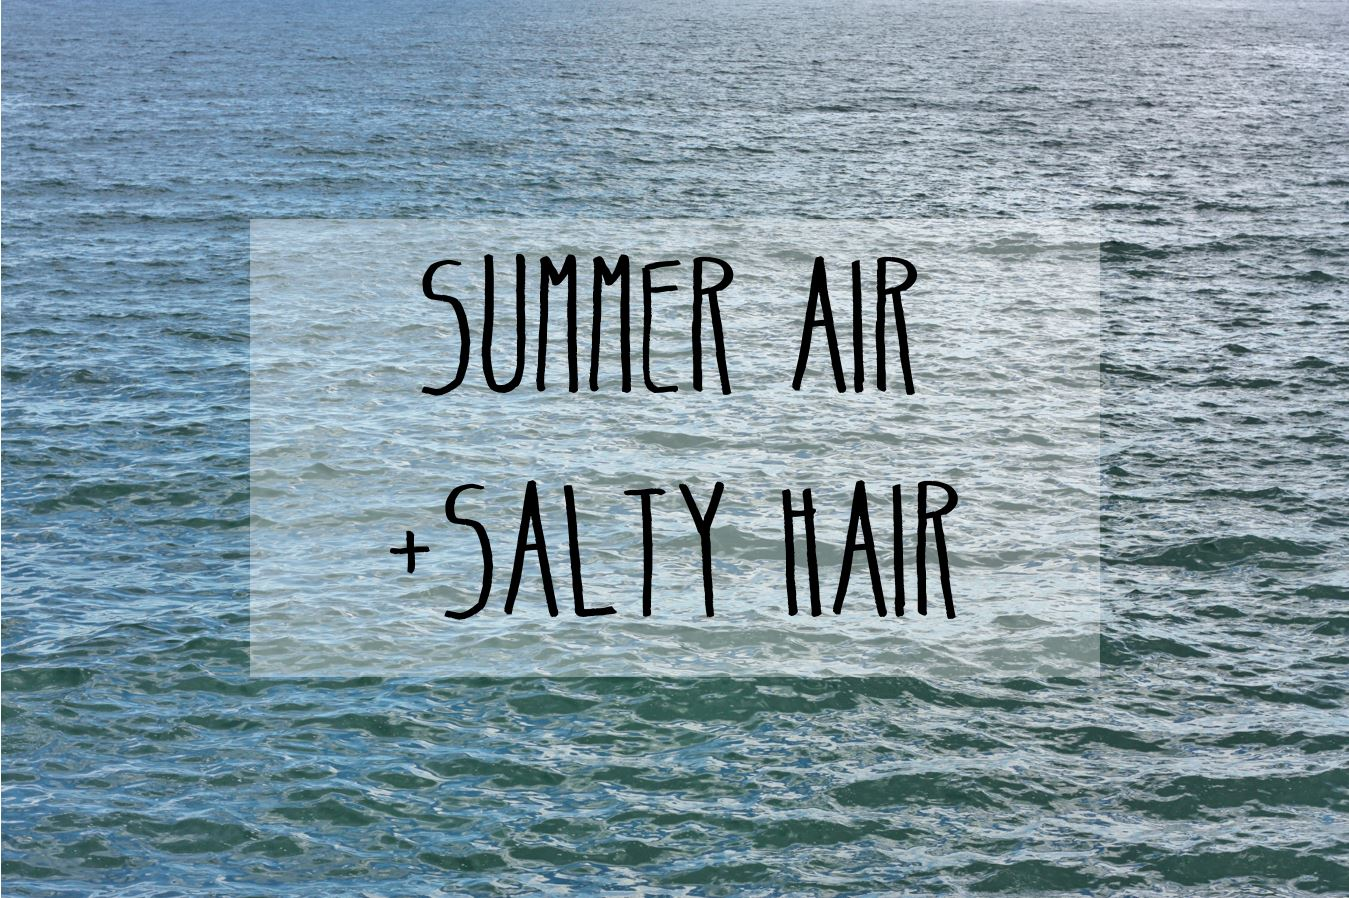 Summer Air and Salty Hair 1